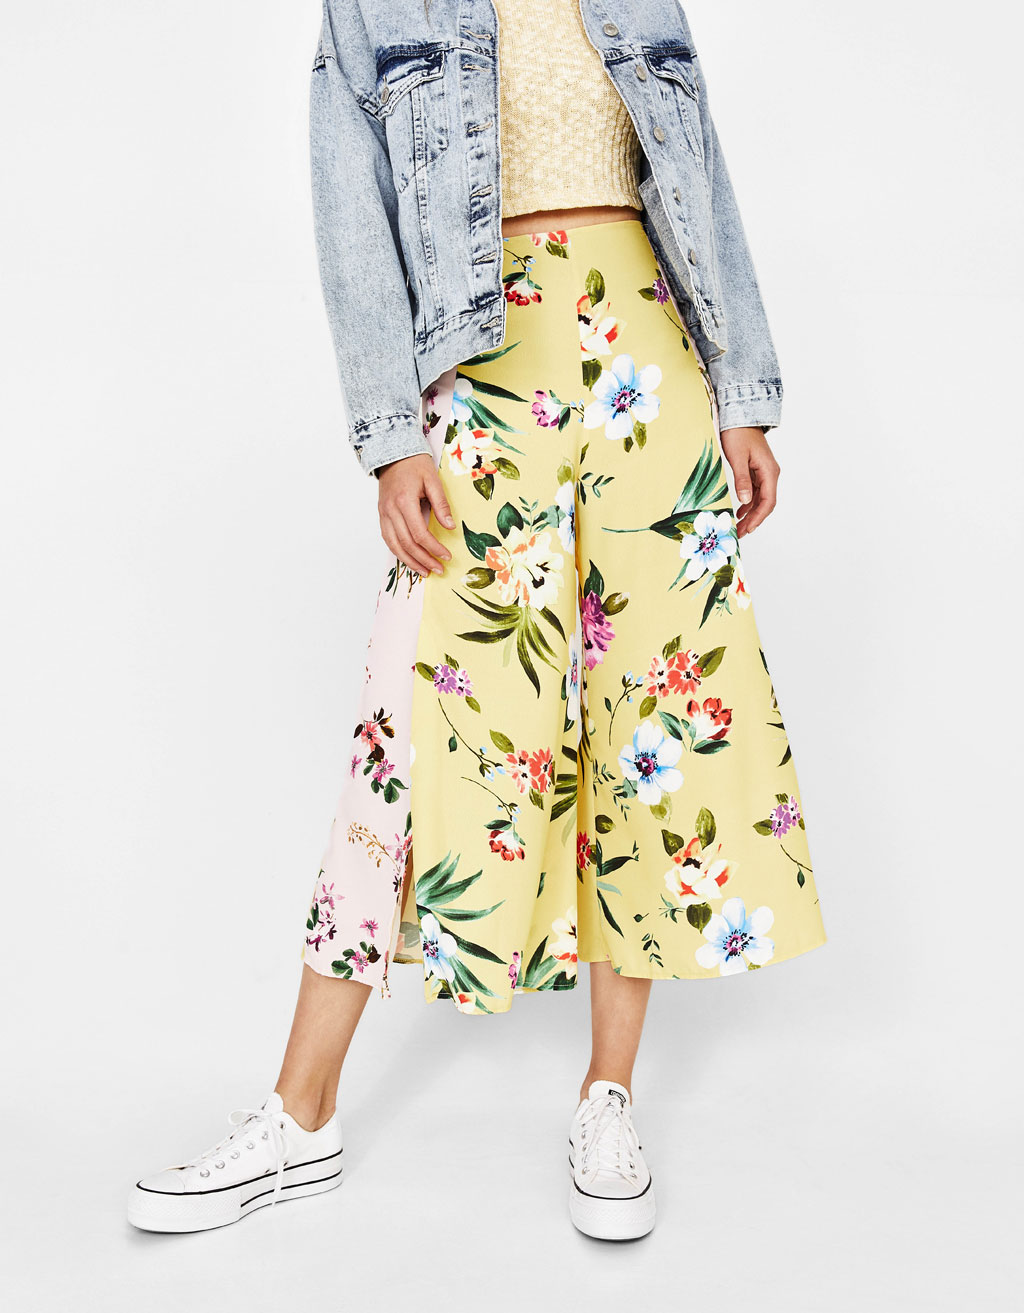 Culottes with contrasting floral prints